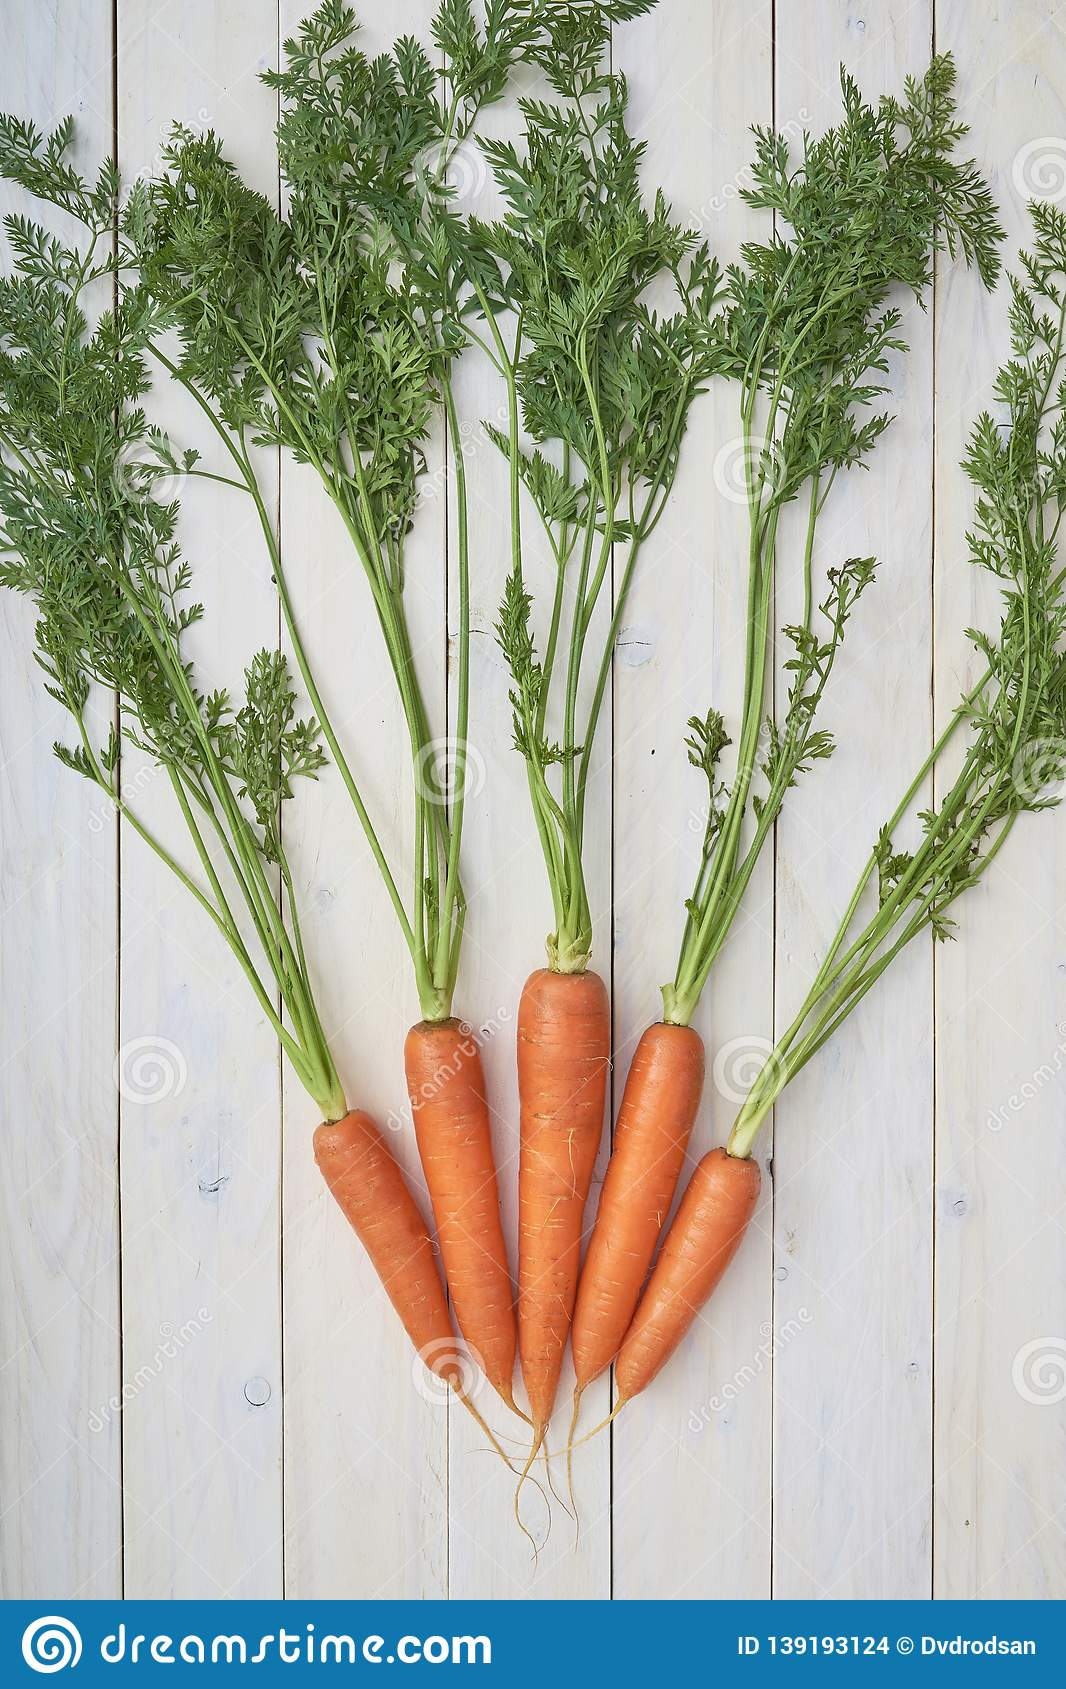 Bunch of fresh carrots with green leaves over white wooden background. Veggies. Organic vegetables. Natural farm products